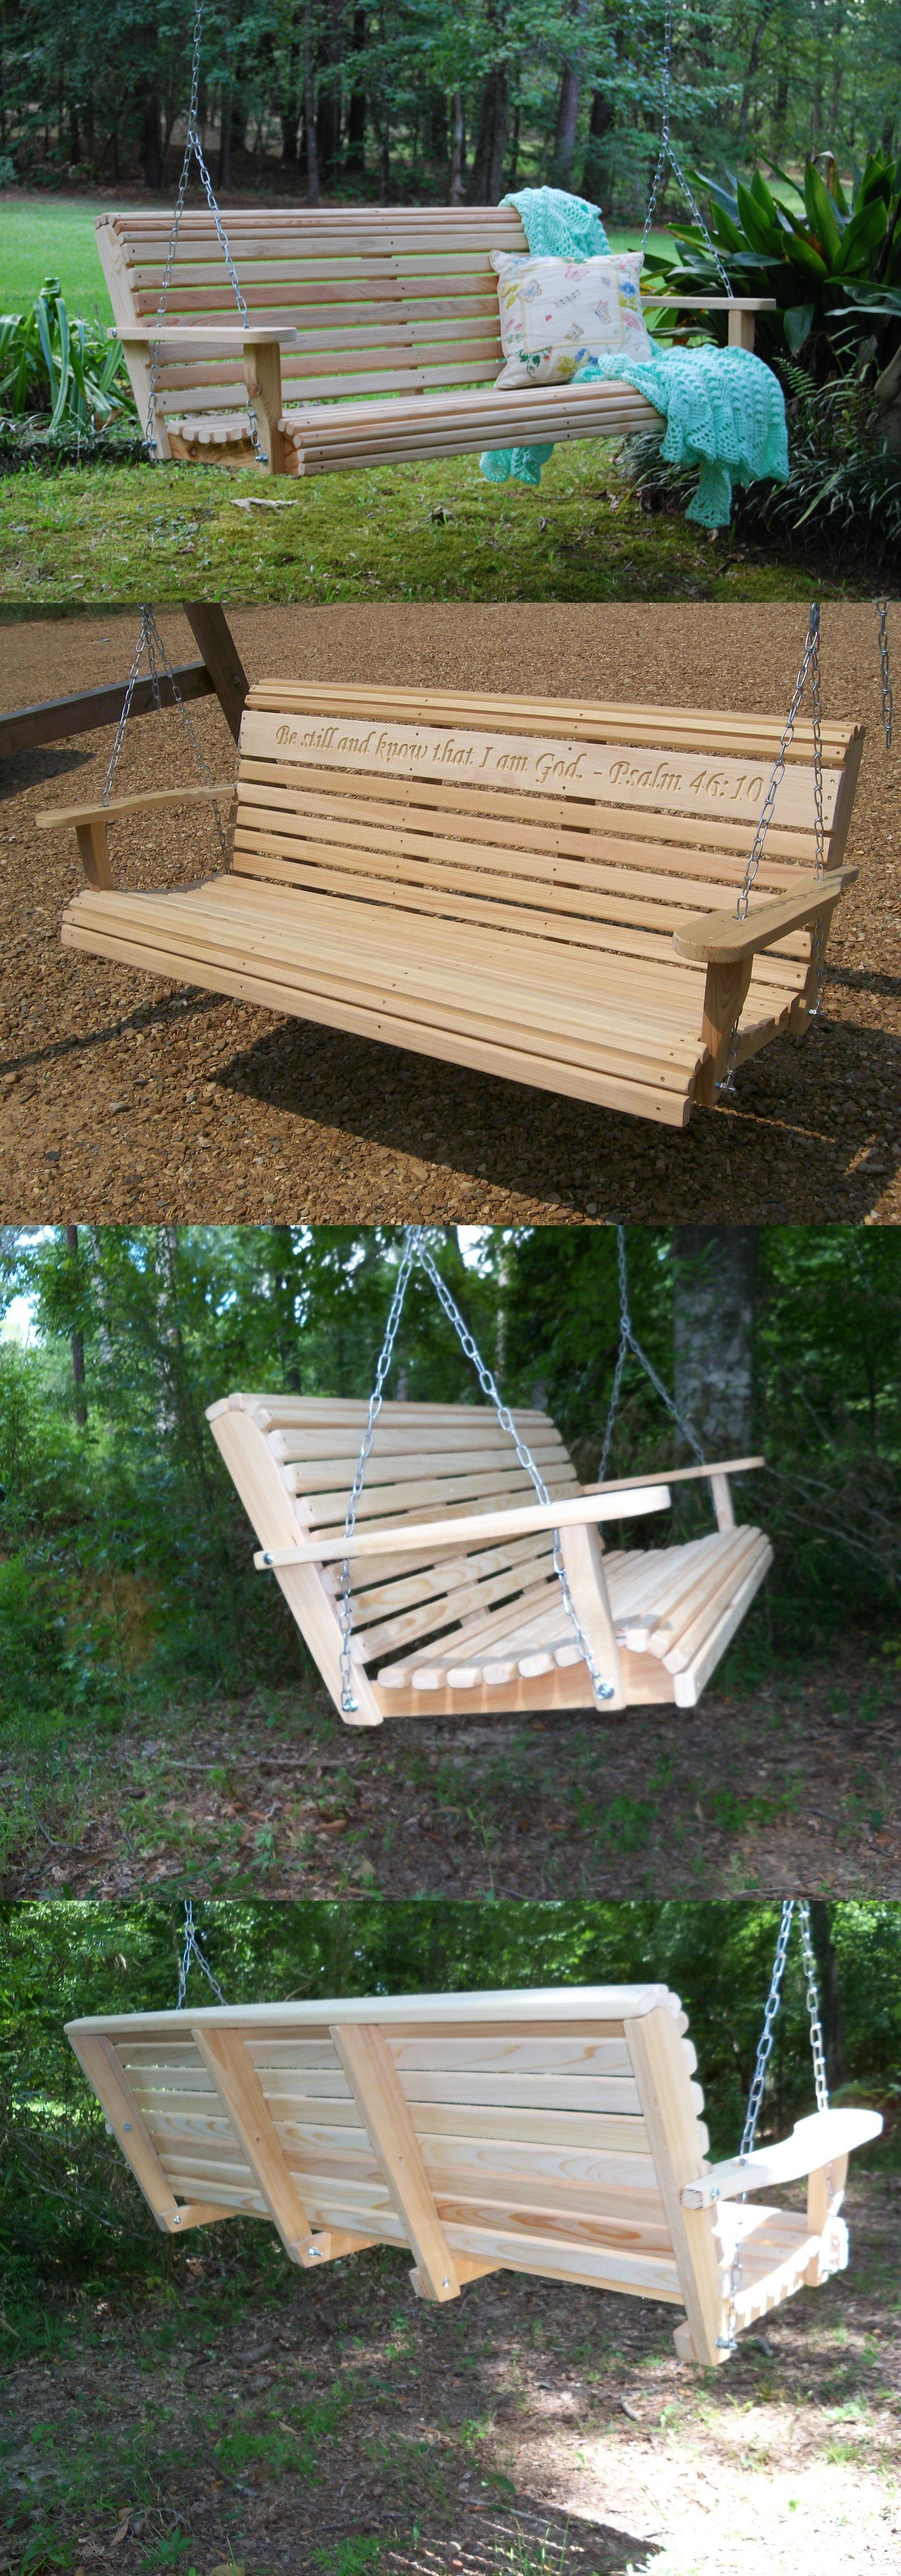 swings 79700 5ft cypress wood deluxe roll porch bench swing with